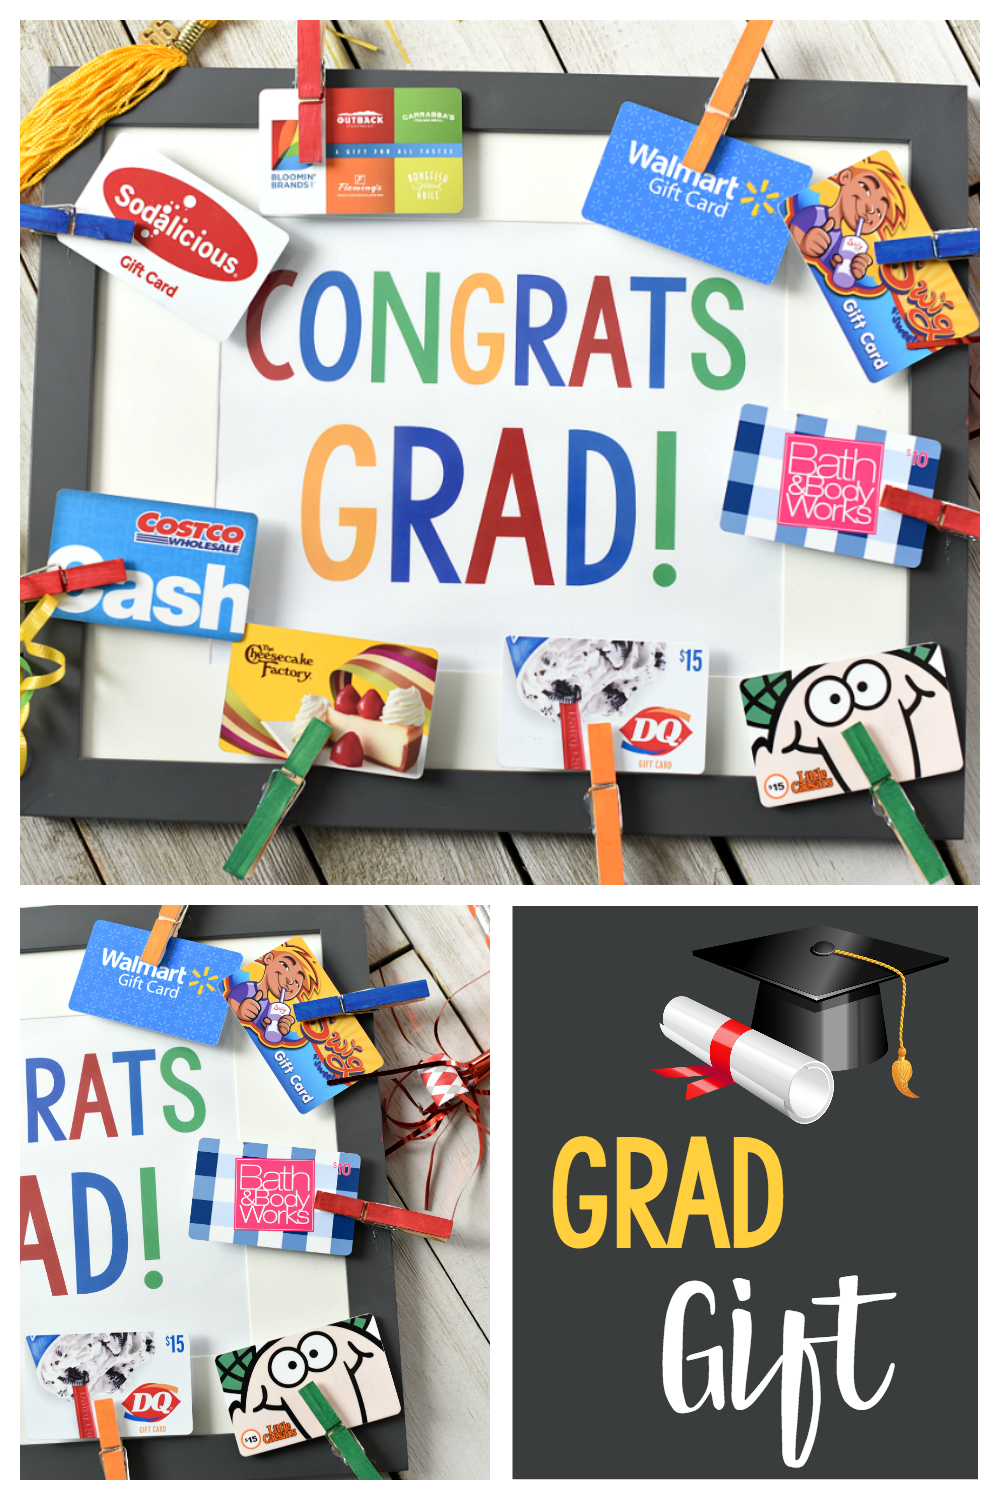 Cute Graduation Gift Ideas: This Congrats Grad Frame makes a great gift for a graduate whether it's from the university or high school or any graduation and it's great for him or her! #graduation #gradgift #graduationgifts #graduationgiftideas #graduationgiftidea